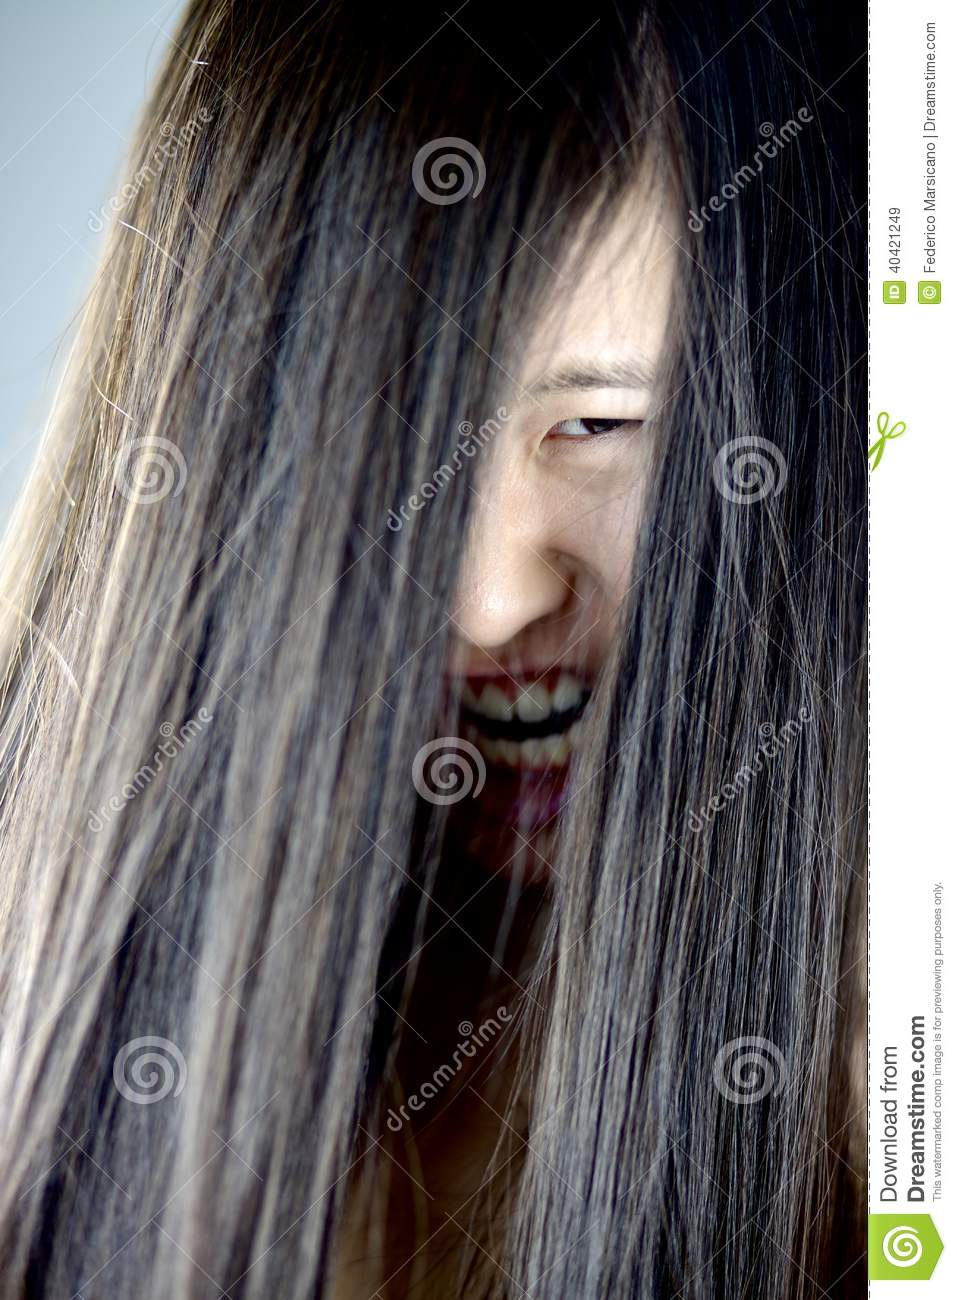 Ugly girl with long hair